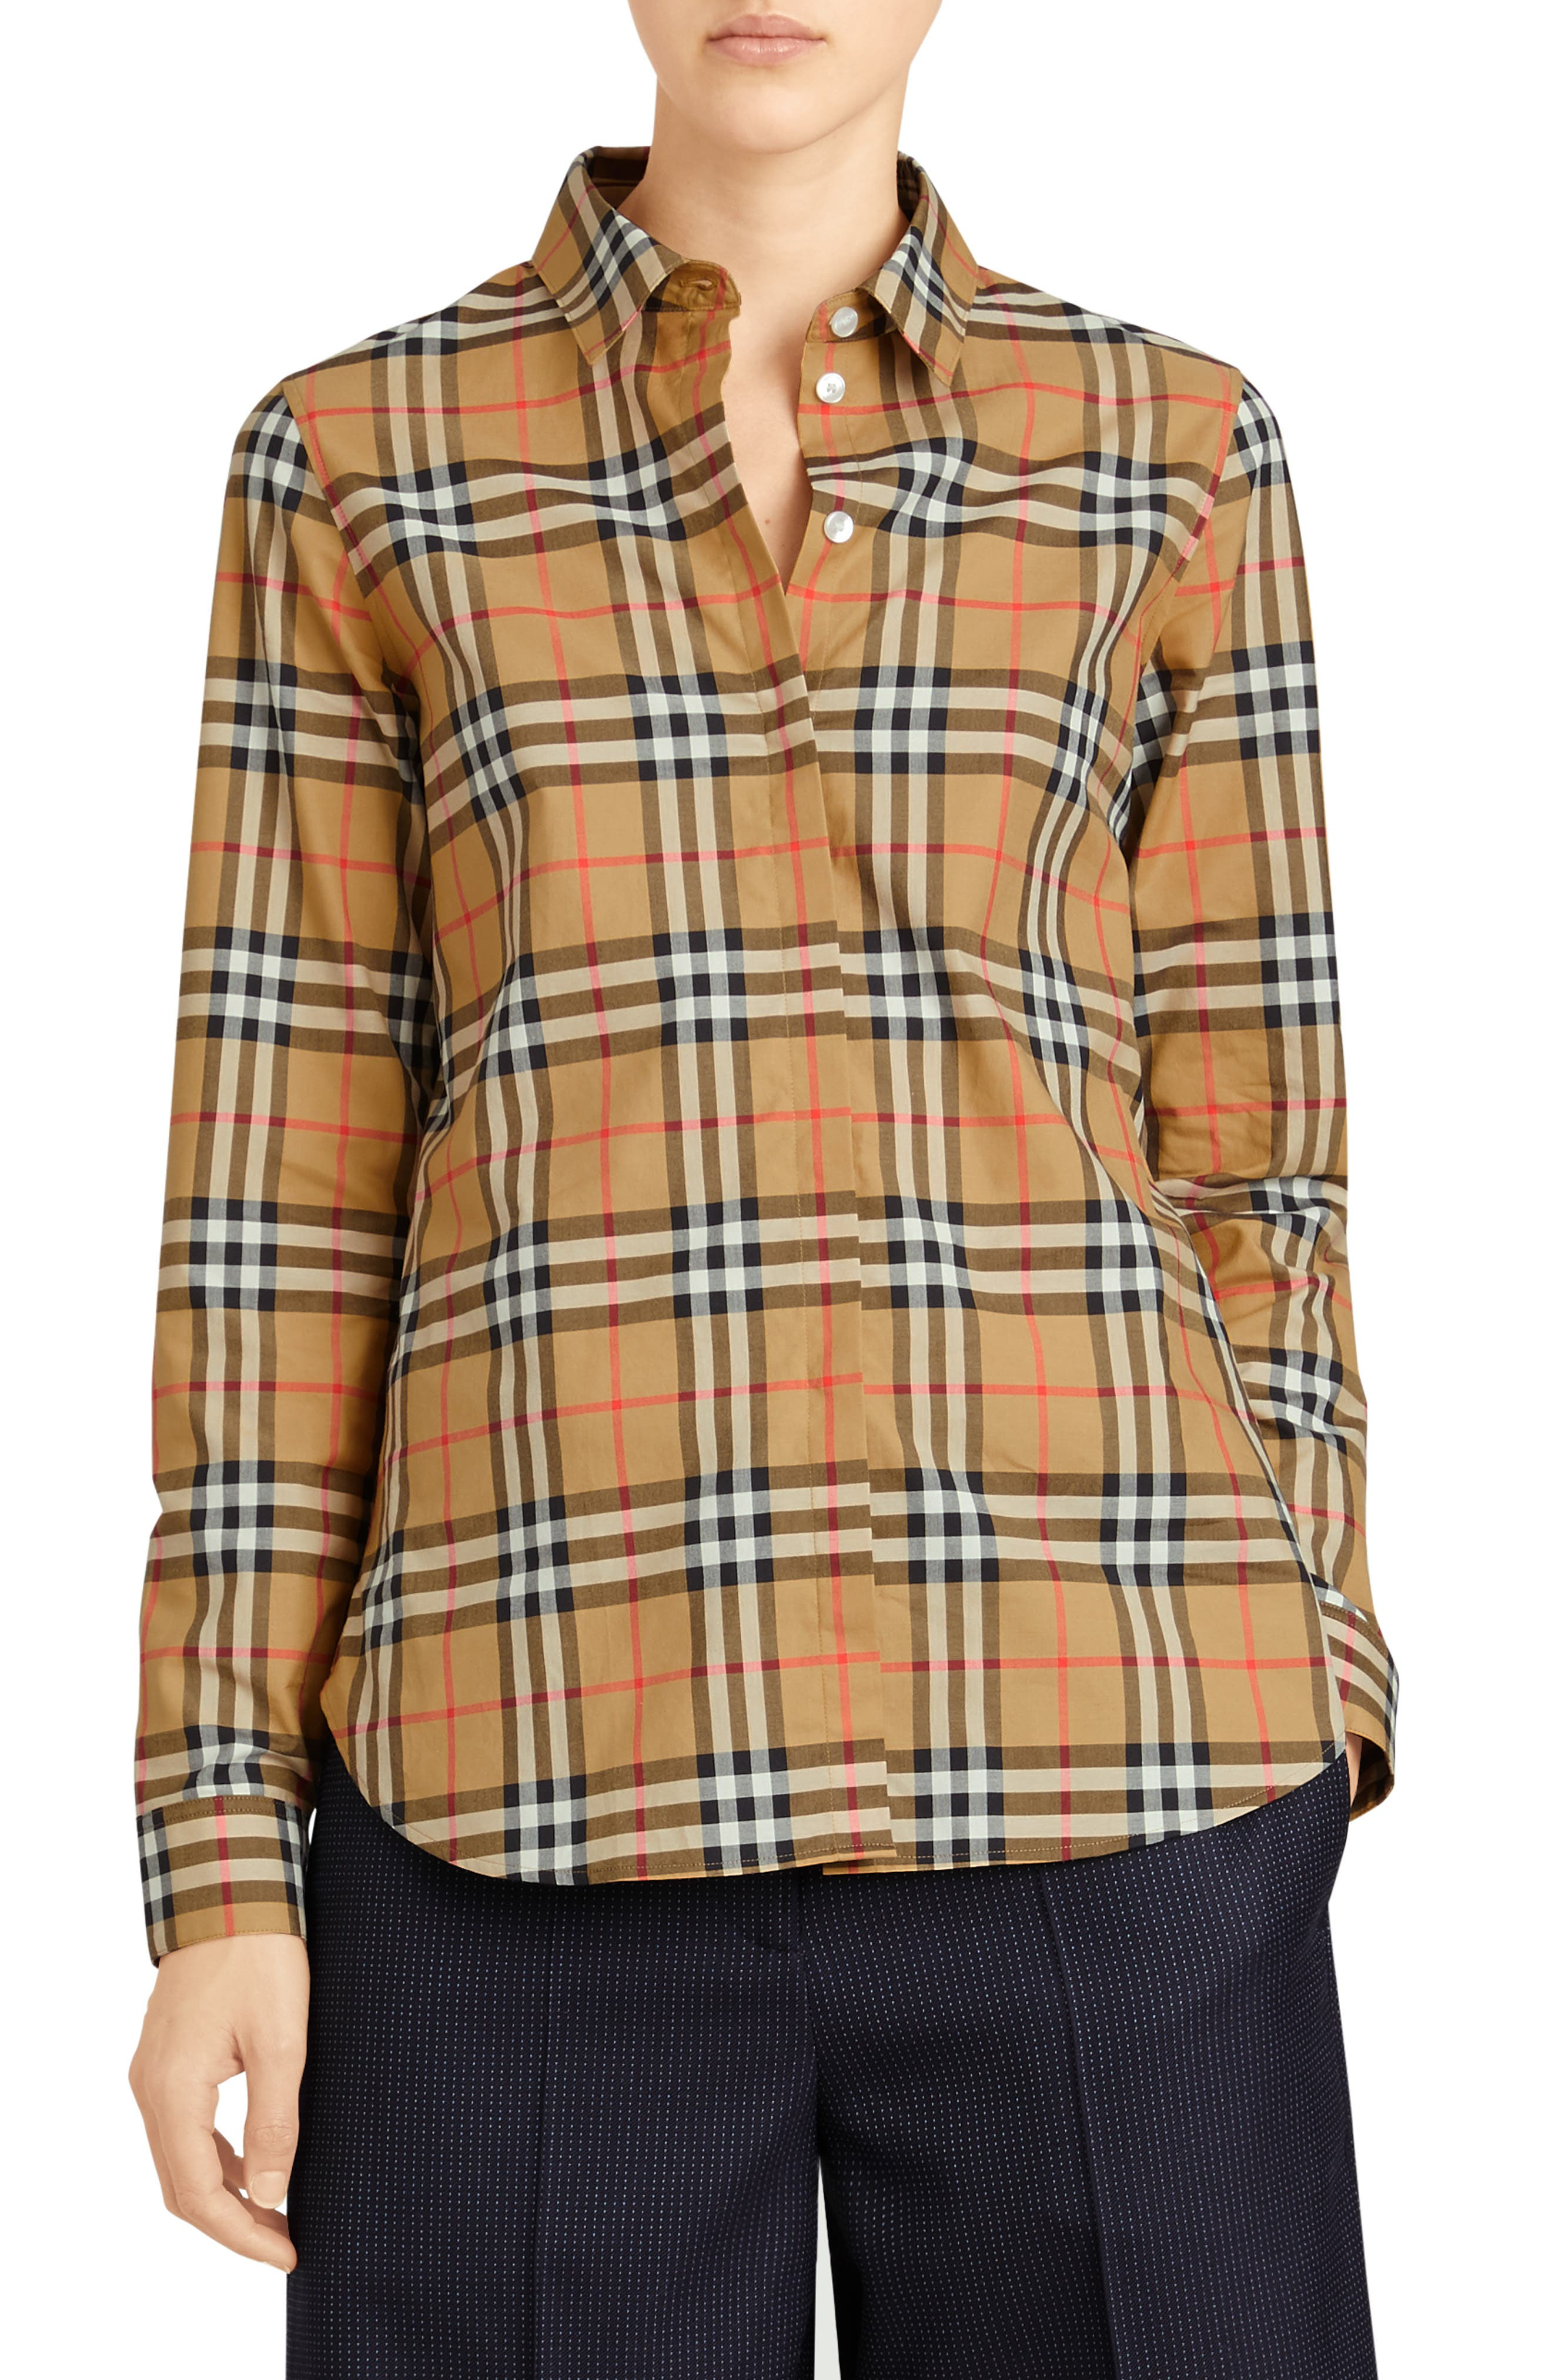 BURBERRY, Crow Vintage Check Shirt, Main thumbnail 1, color, ANTIQUE YELLOW CHECK